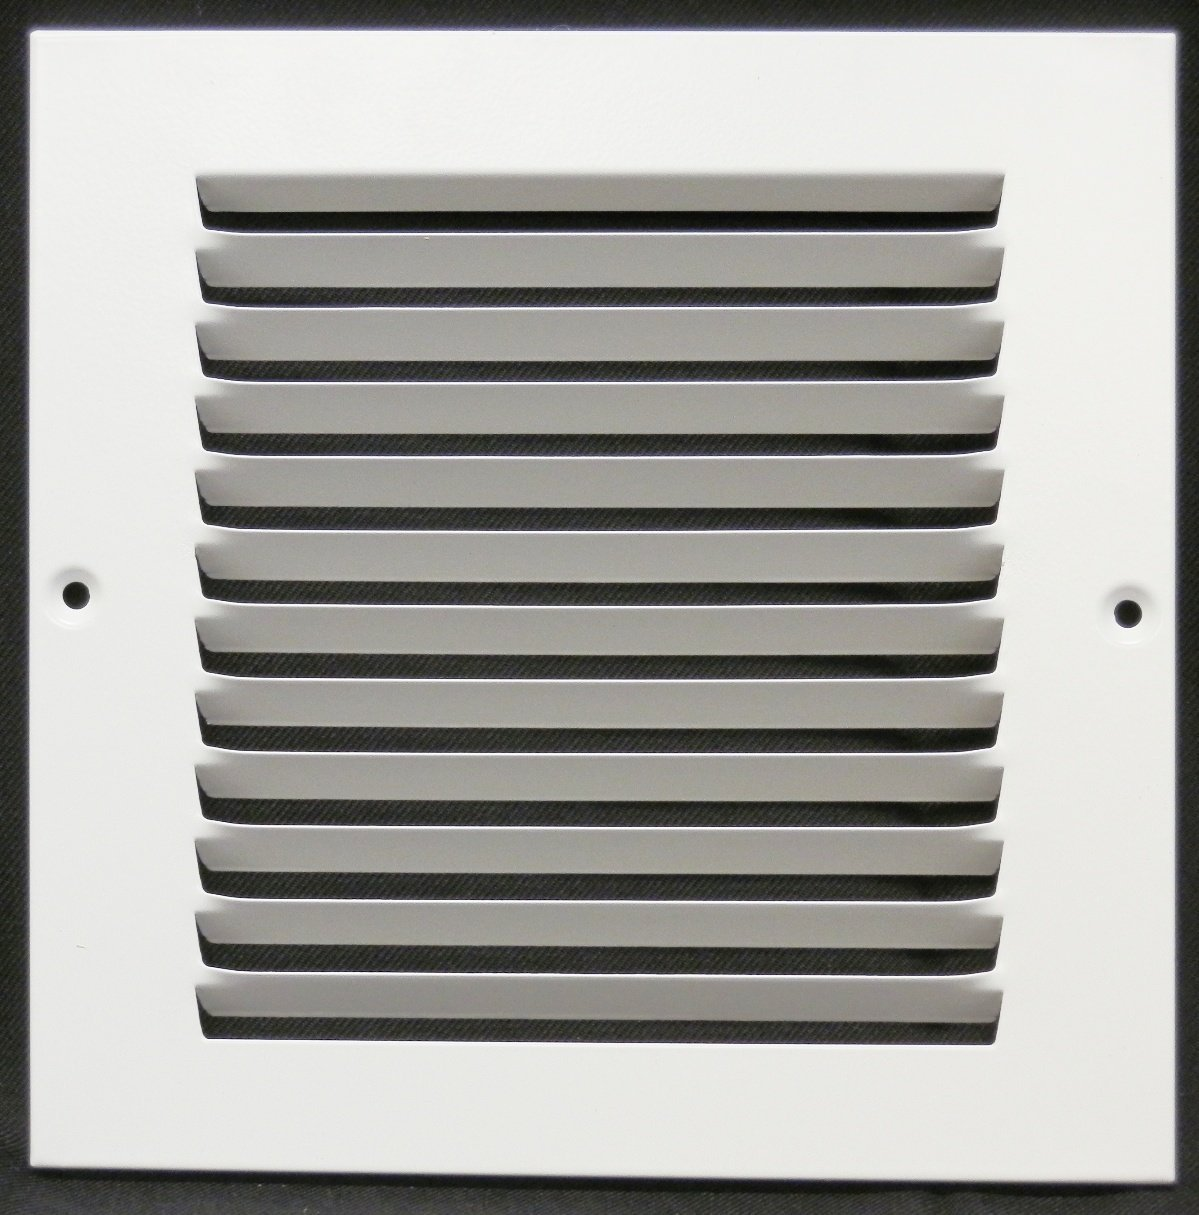 6''w X 6''h Steel Return Air Grilles - Sidewall and Cieling - HVAC DUCT COVER - White [Outer Dimensions: 7.75''w X 7.75''h]